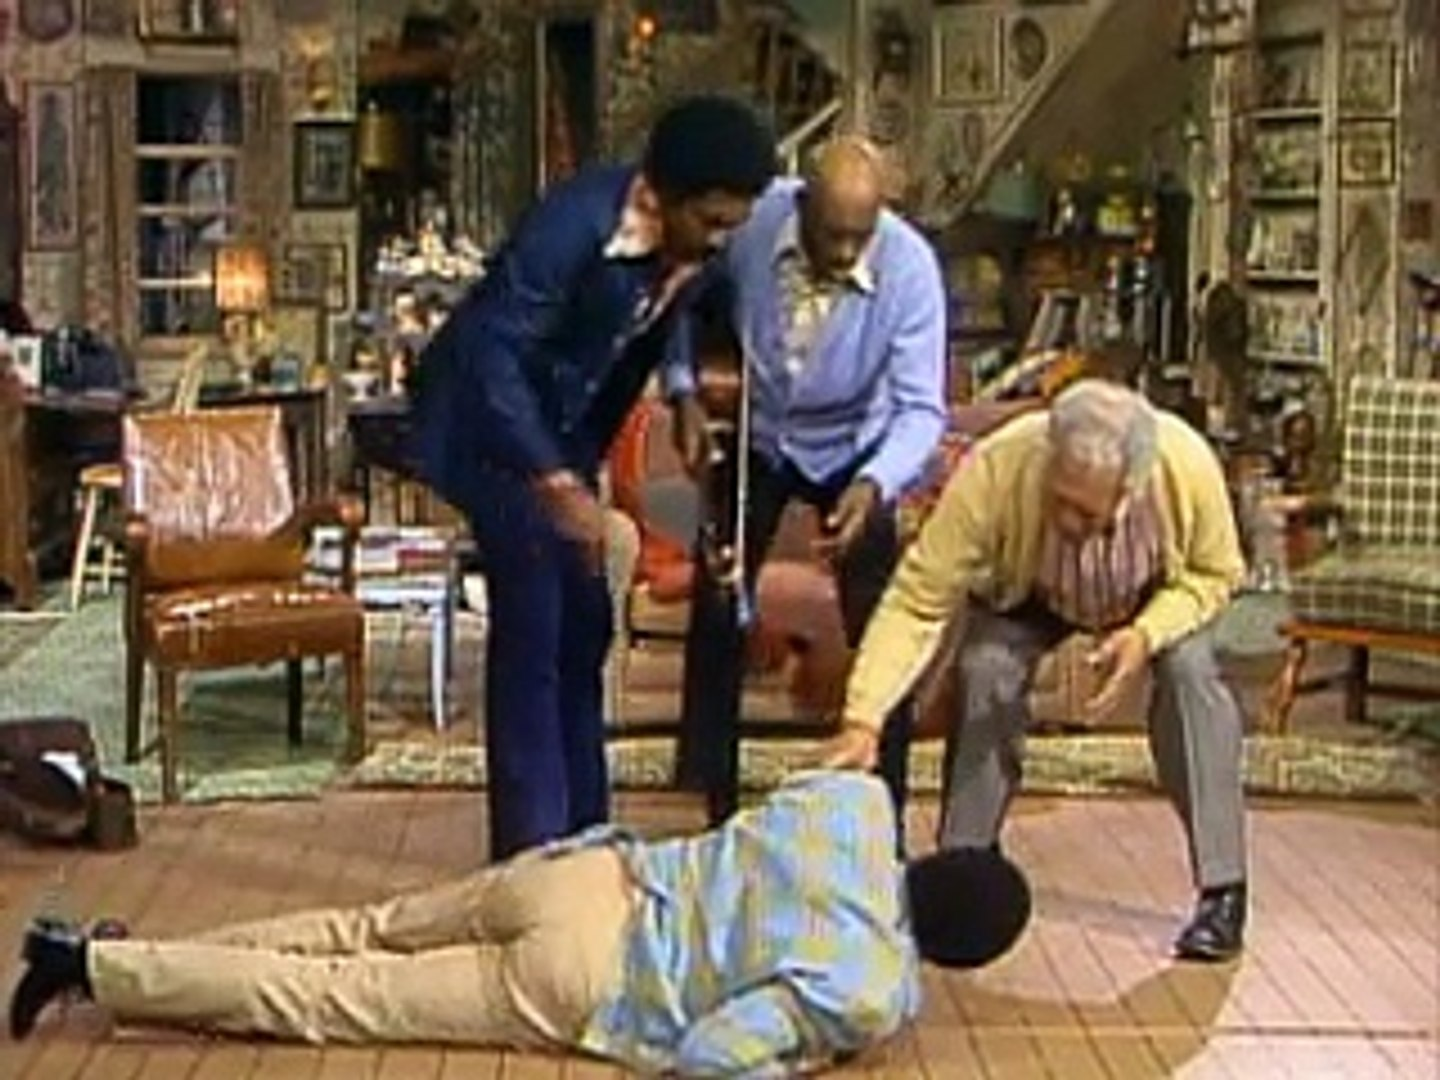 SANFORD AND SON S4 E20